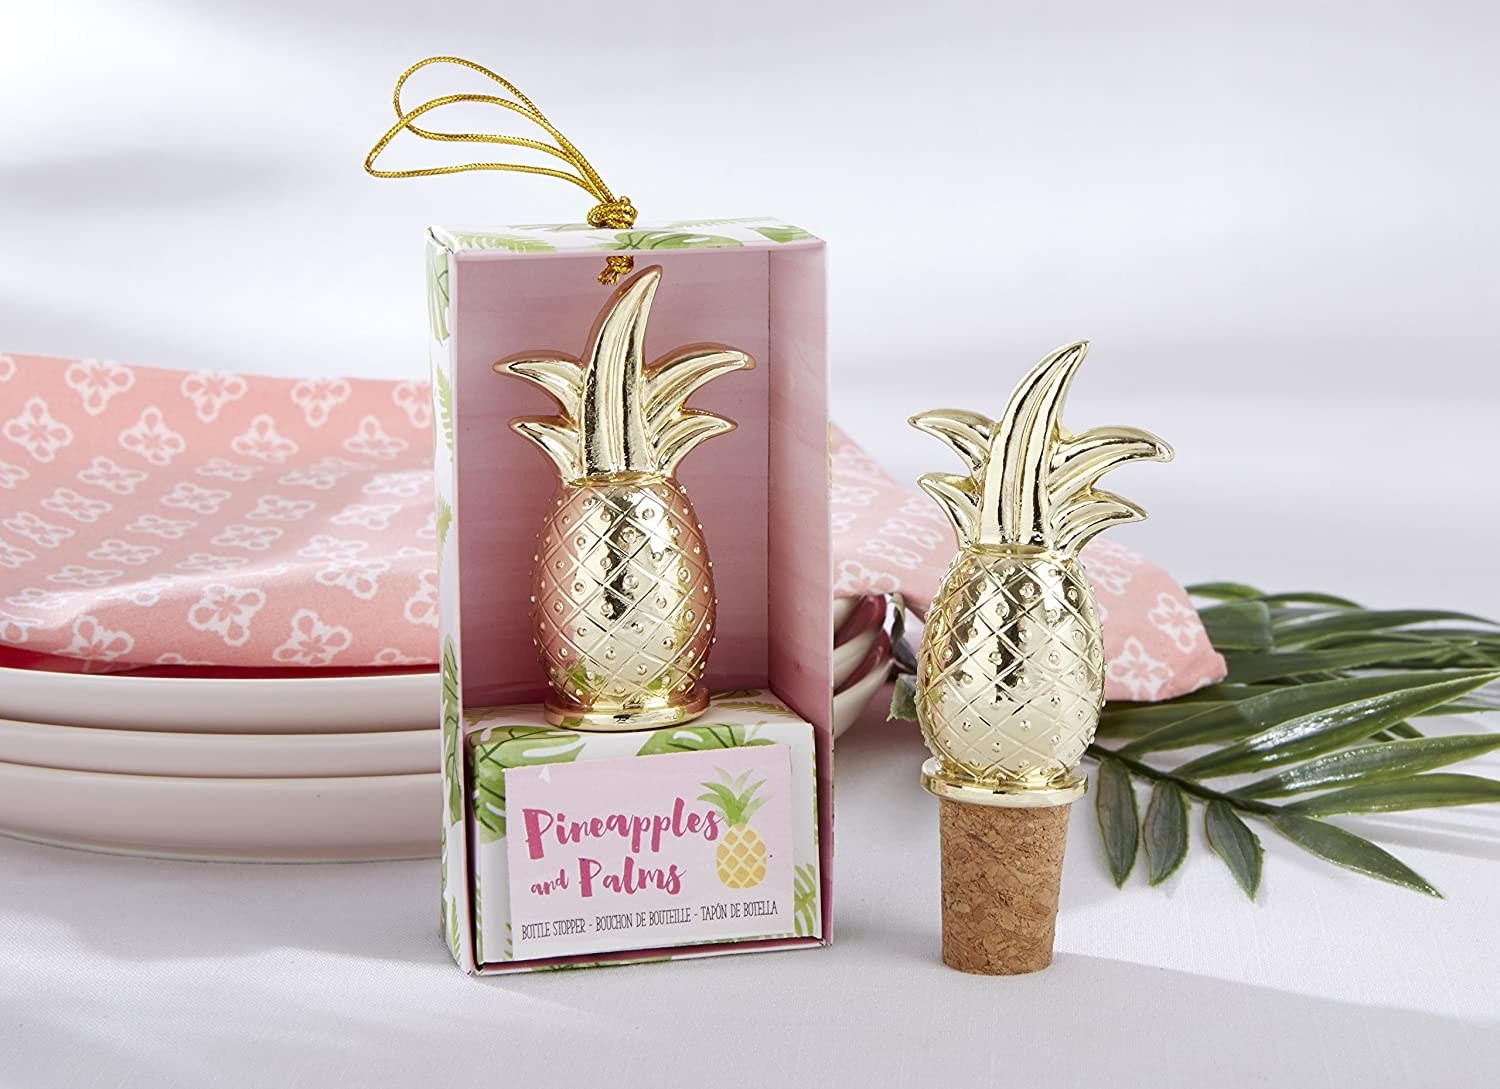 A pineapple wine stopper in a package and a pineapple wine stopper showing the cork